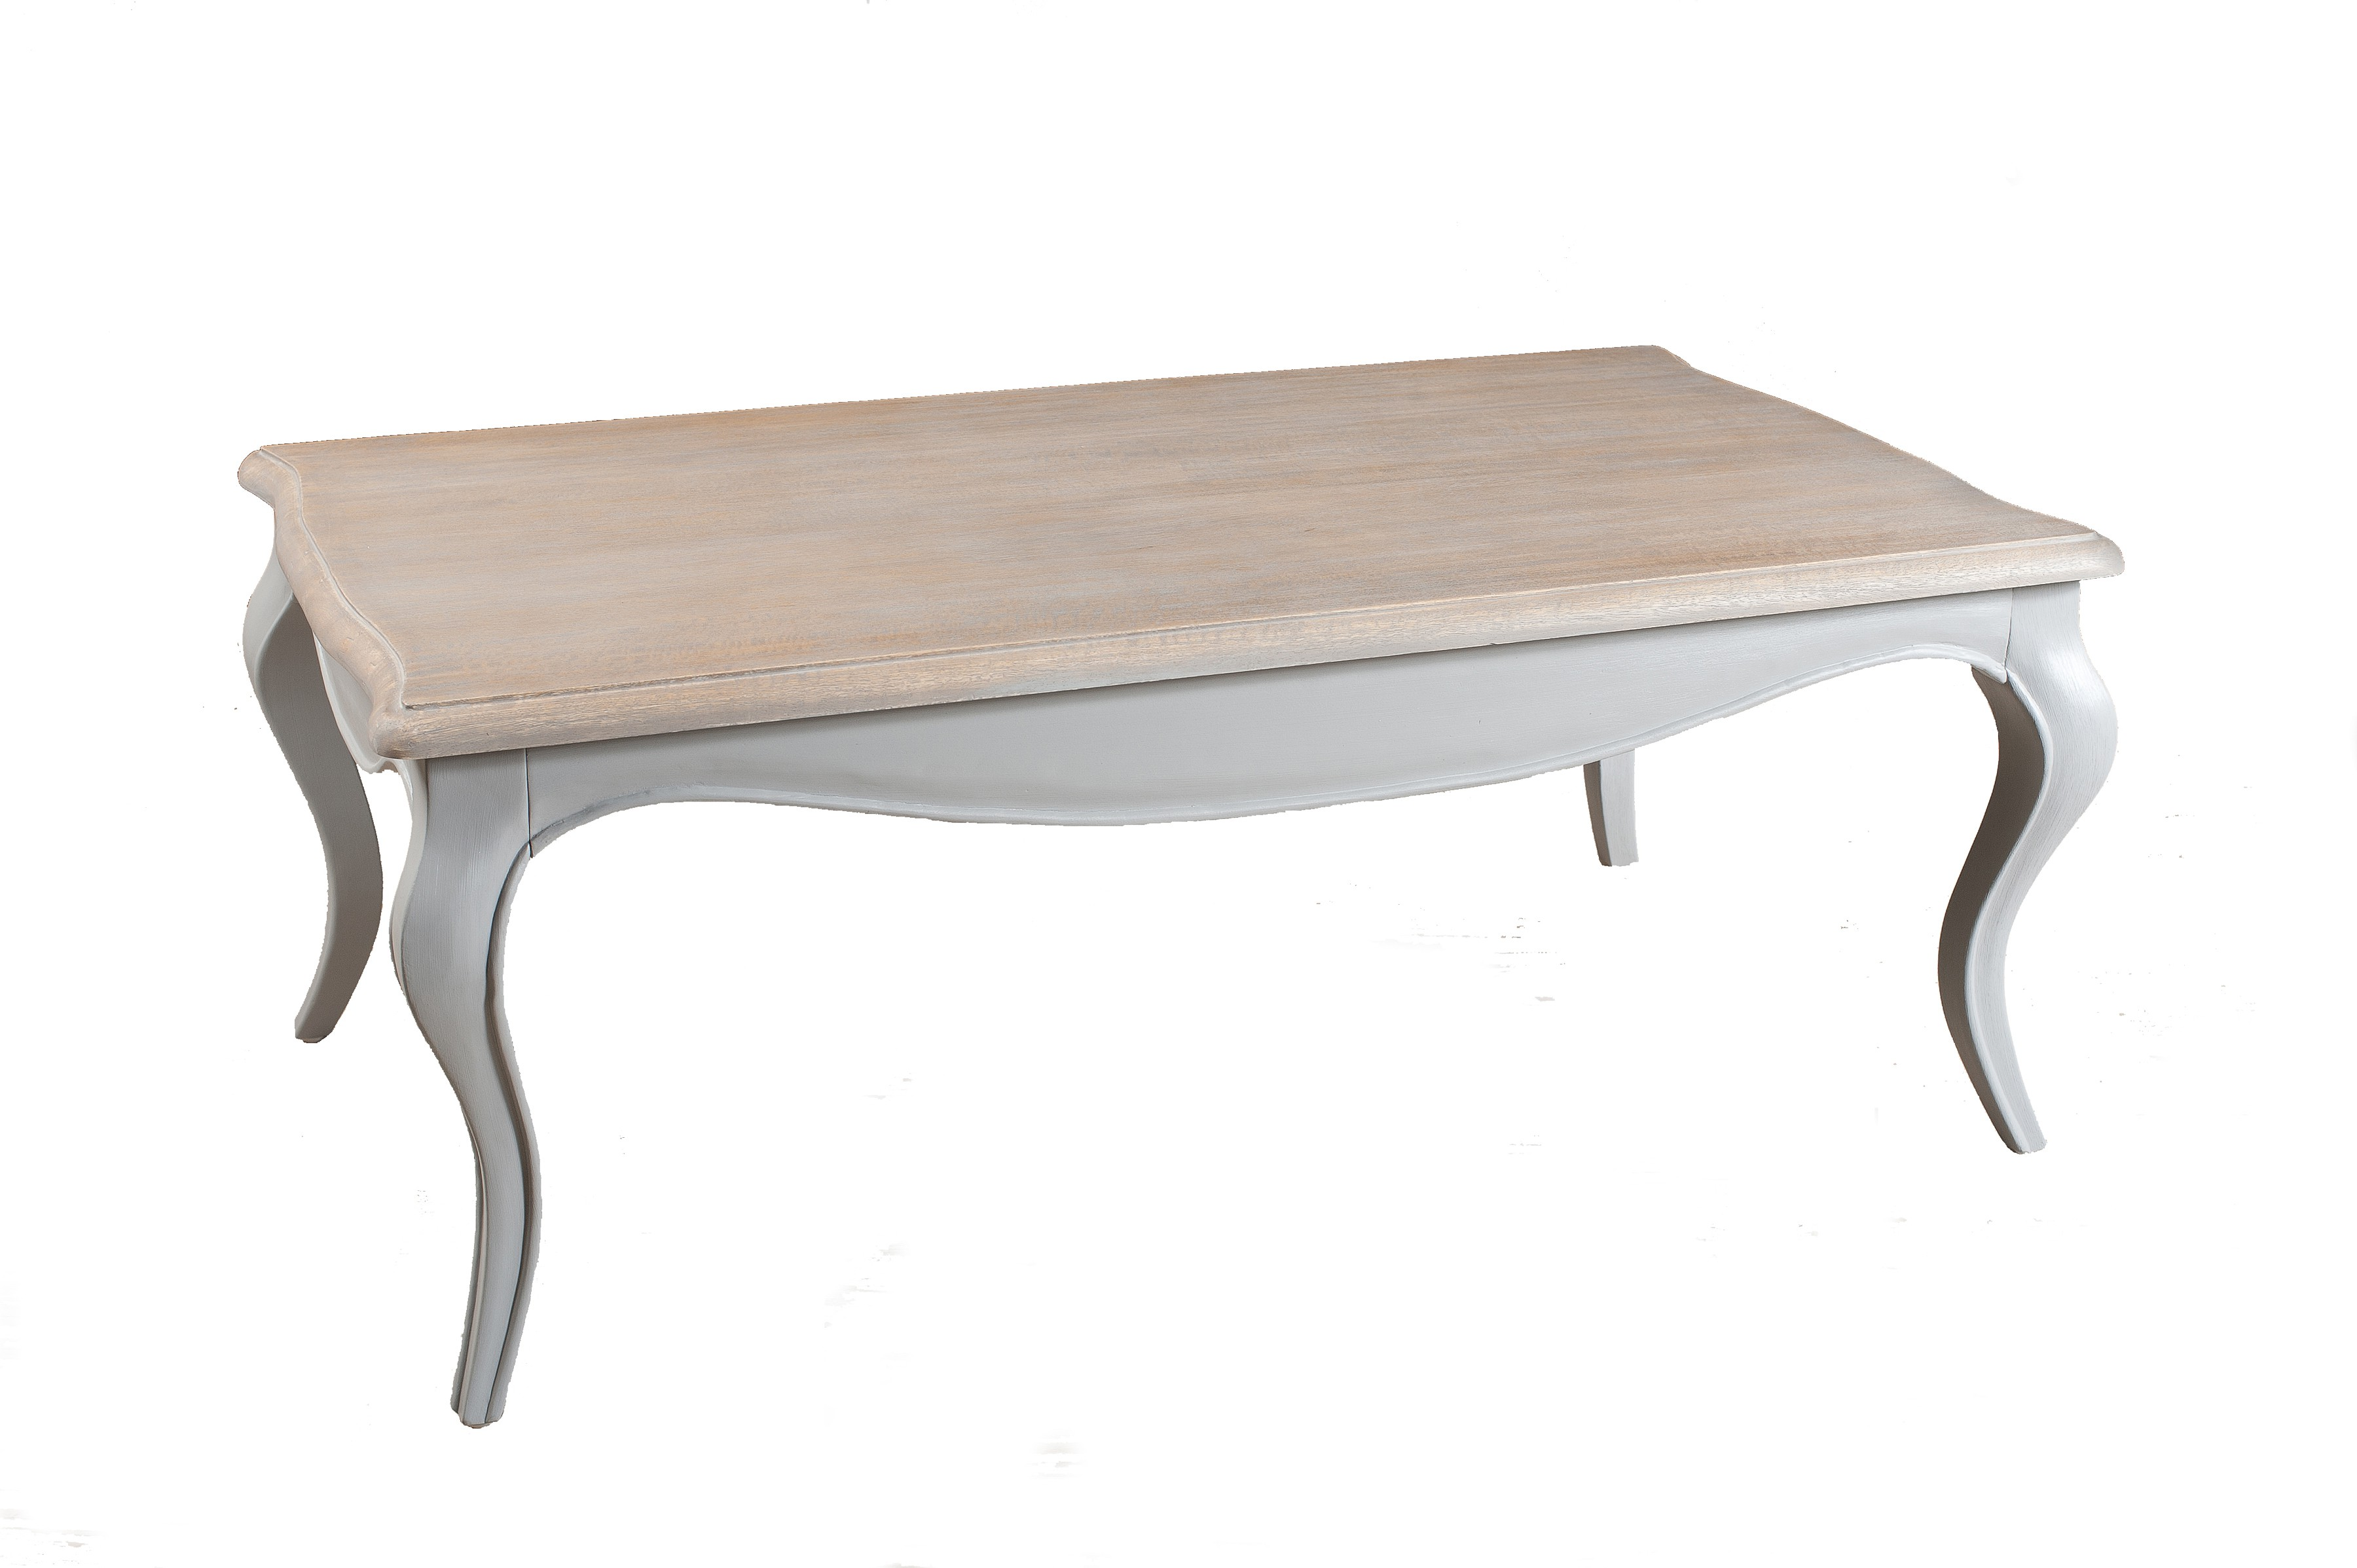 Table Basse Baroque Rectangle Gris Clair 115x65cm Odyssee Tables Basses Pier Import